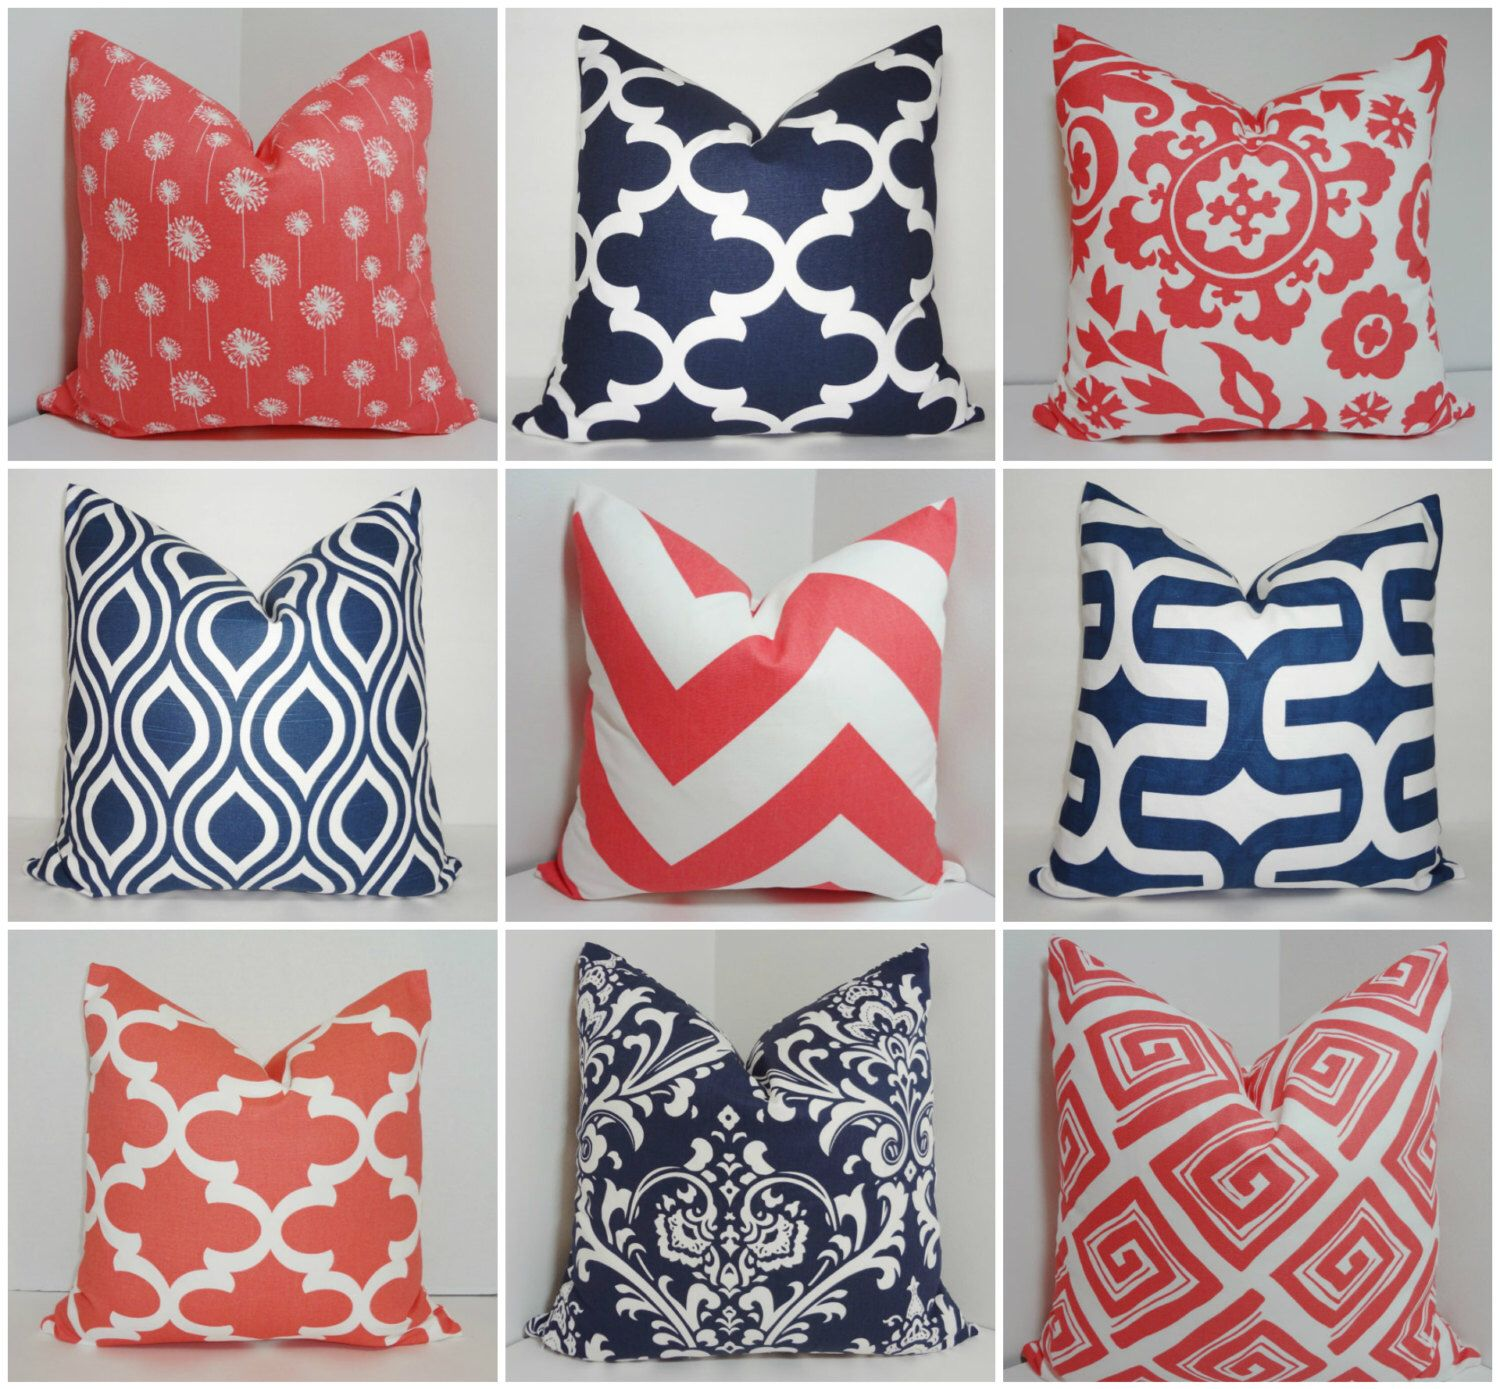 Coral & Navy Pillow Covers Dandelion Damask Chevron Moroccan Print Pillow Covers Choose Size by HomeLiving on Etsy https://www.etsy.com/listing/246892070/coral-navy-pillow-covers-dandelion